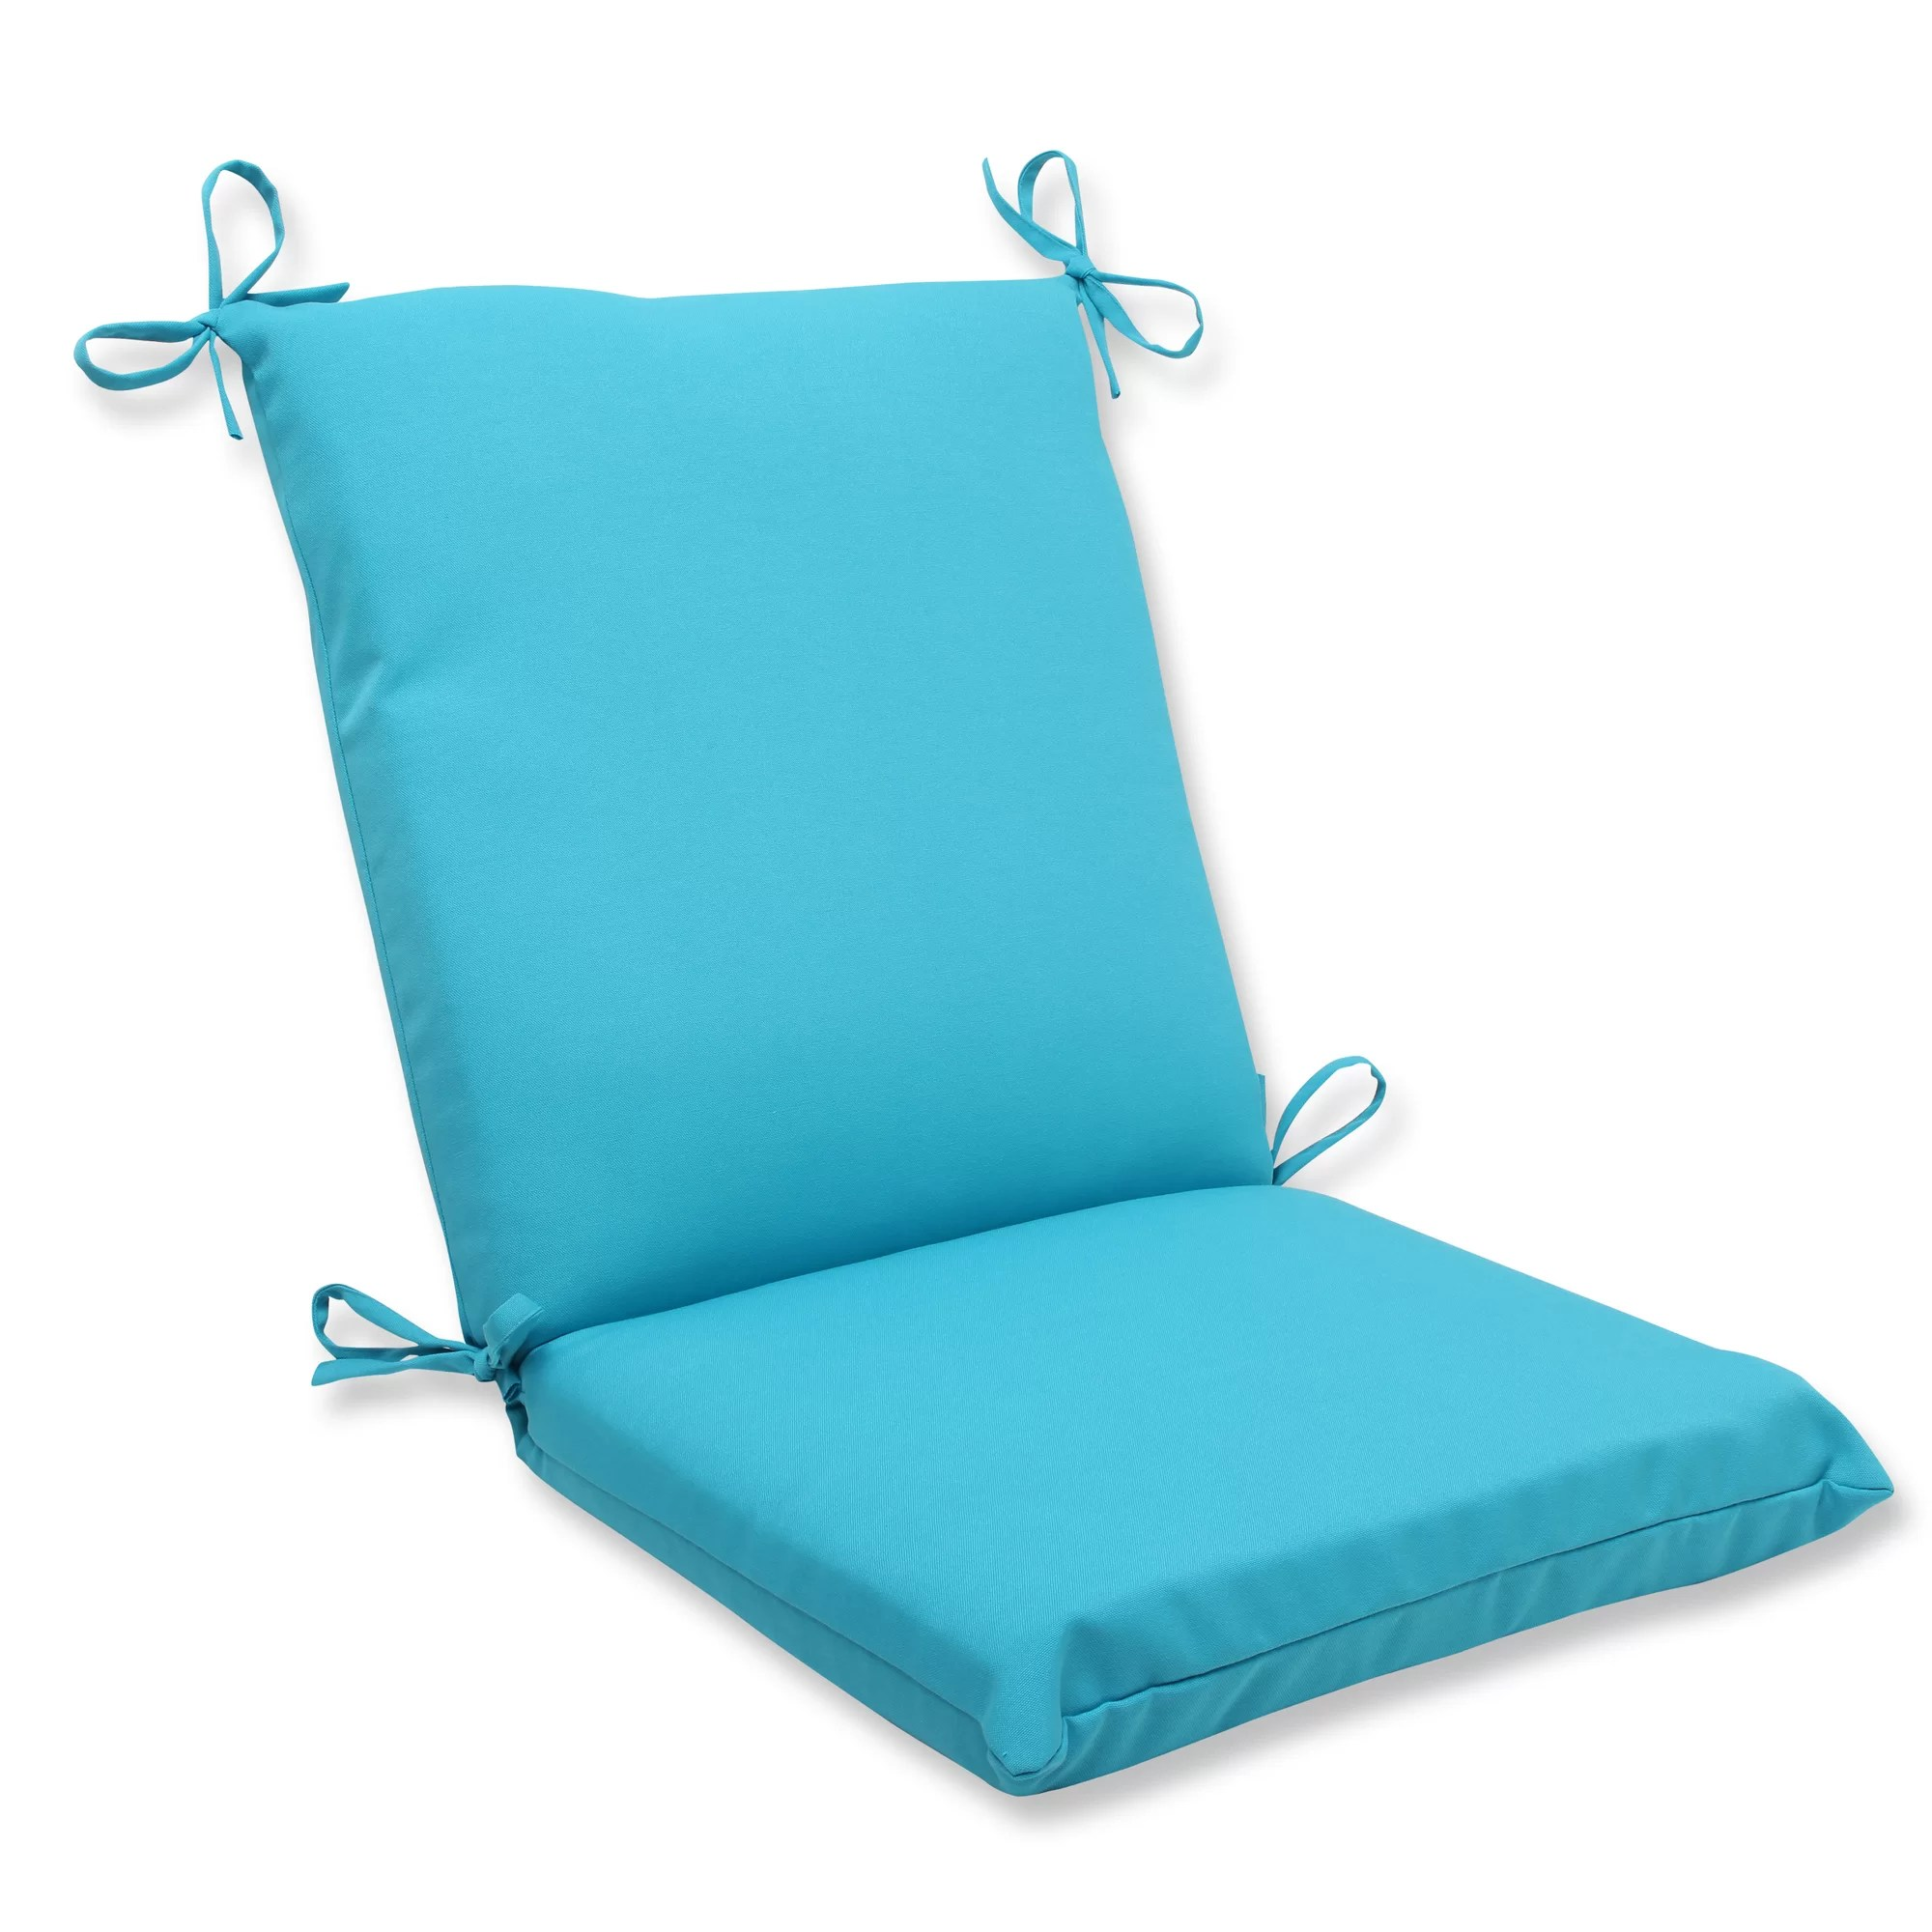 Outdoor Lounge Chair Cushions Pillow Perfect Veranda Outdoor Lounge Chair Cushion